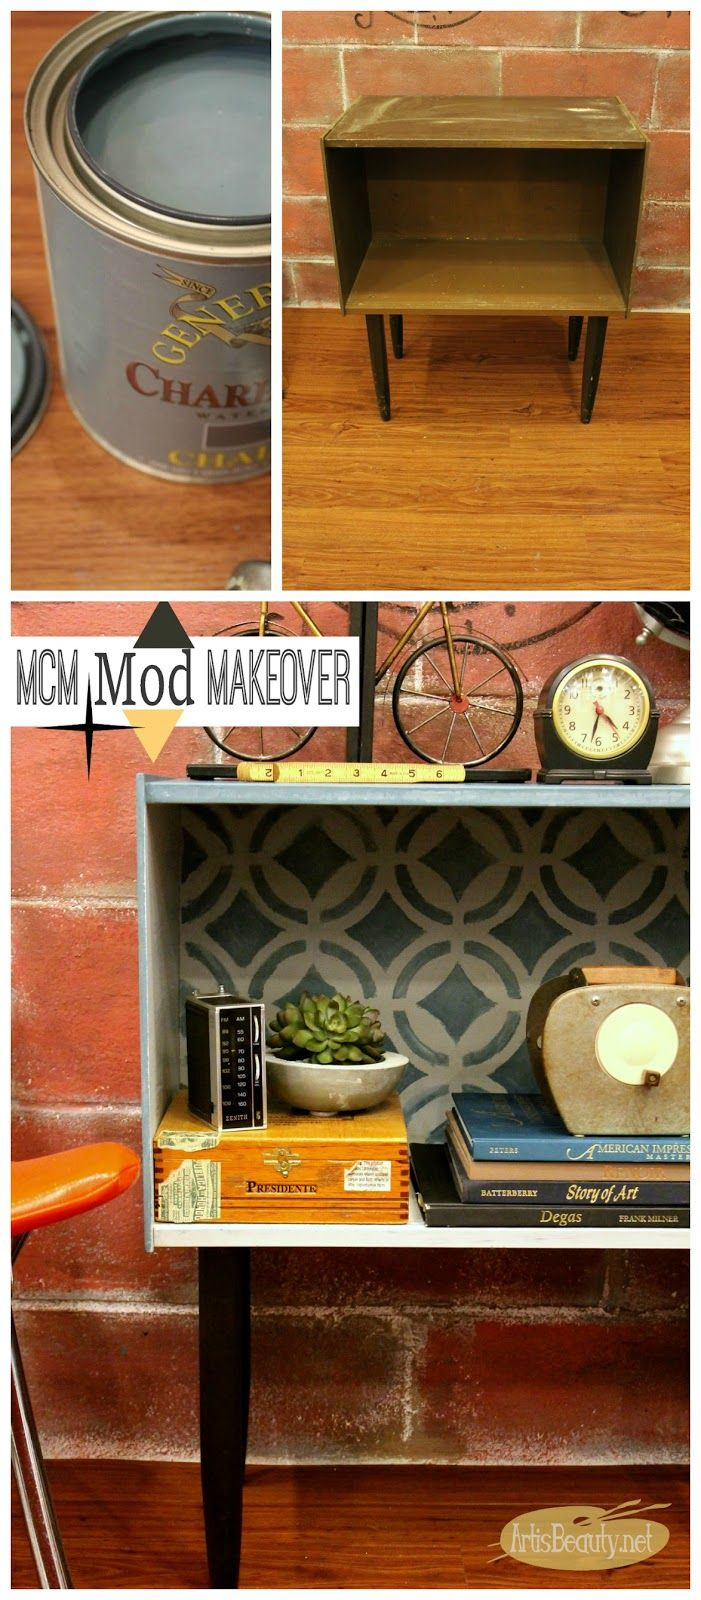 ART IS BEAUTY: MOD cabinet given a FRESH START with General Finishes